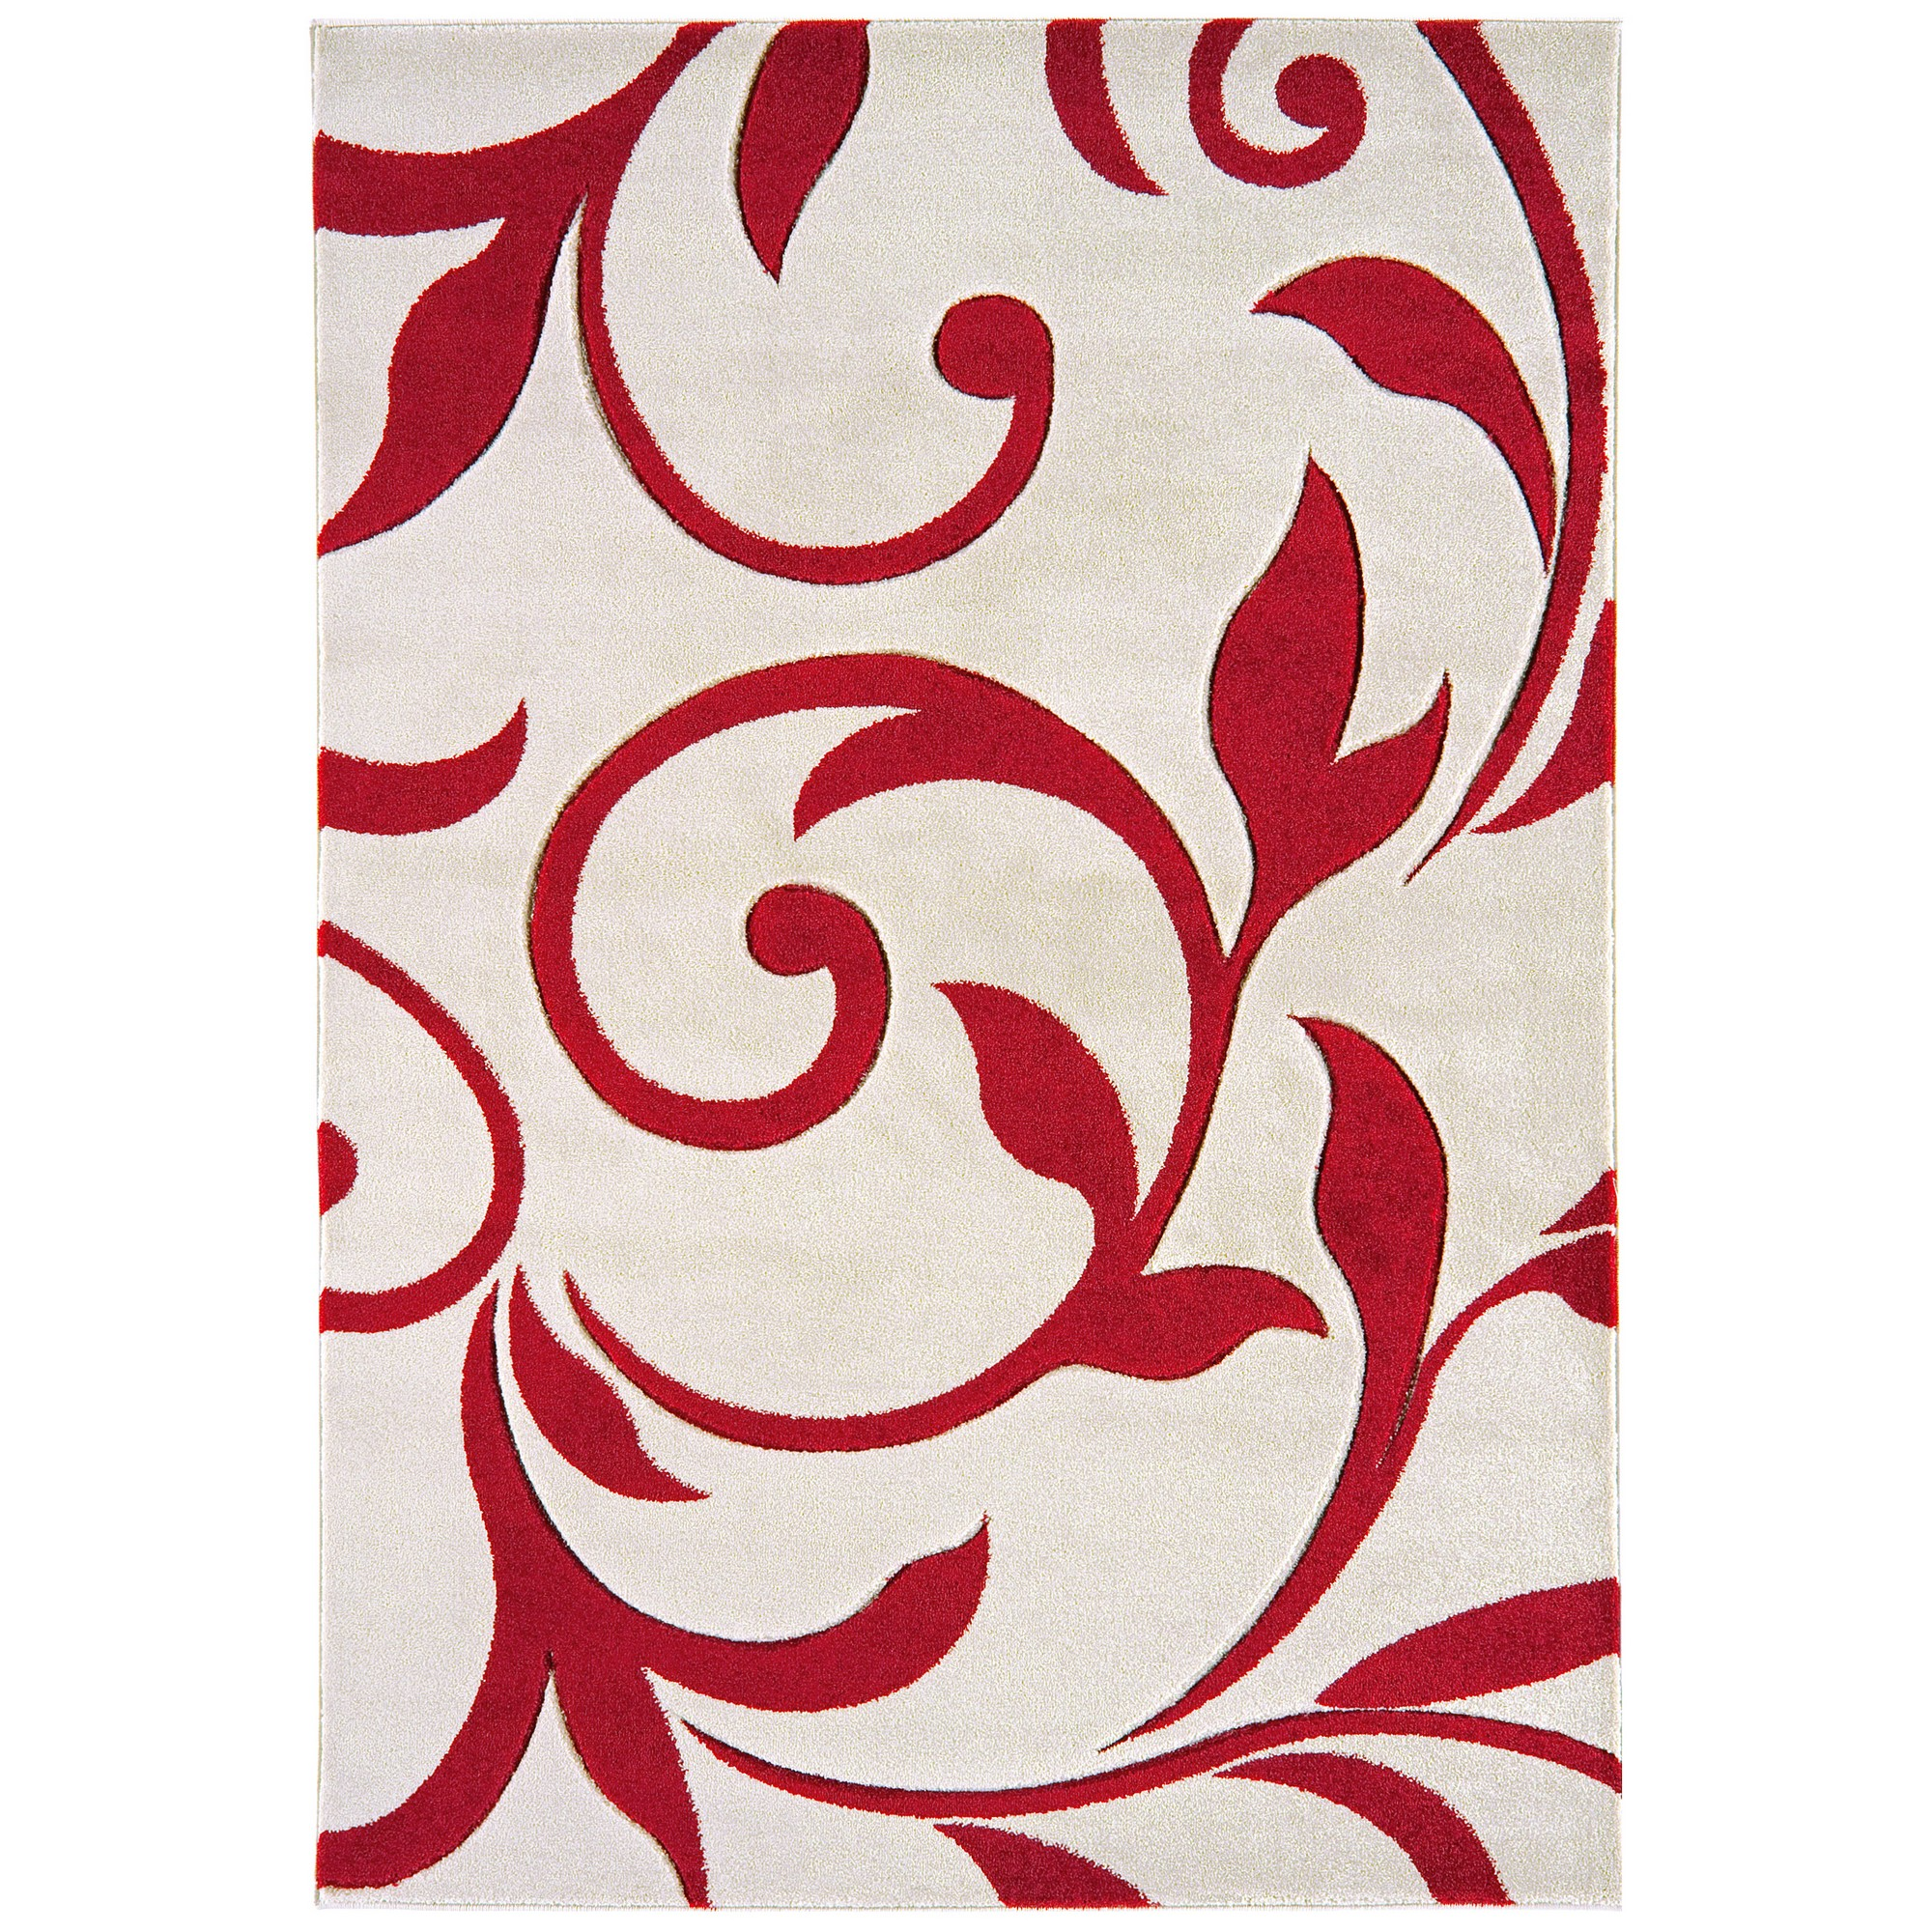 Vogue Vine Rugs VG27 in Red and Cream